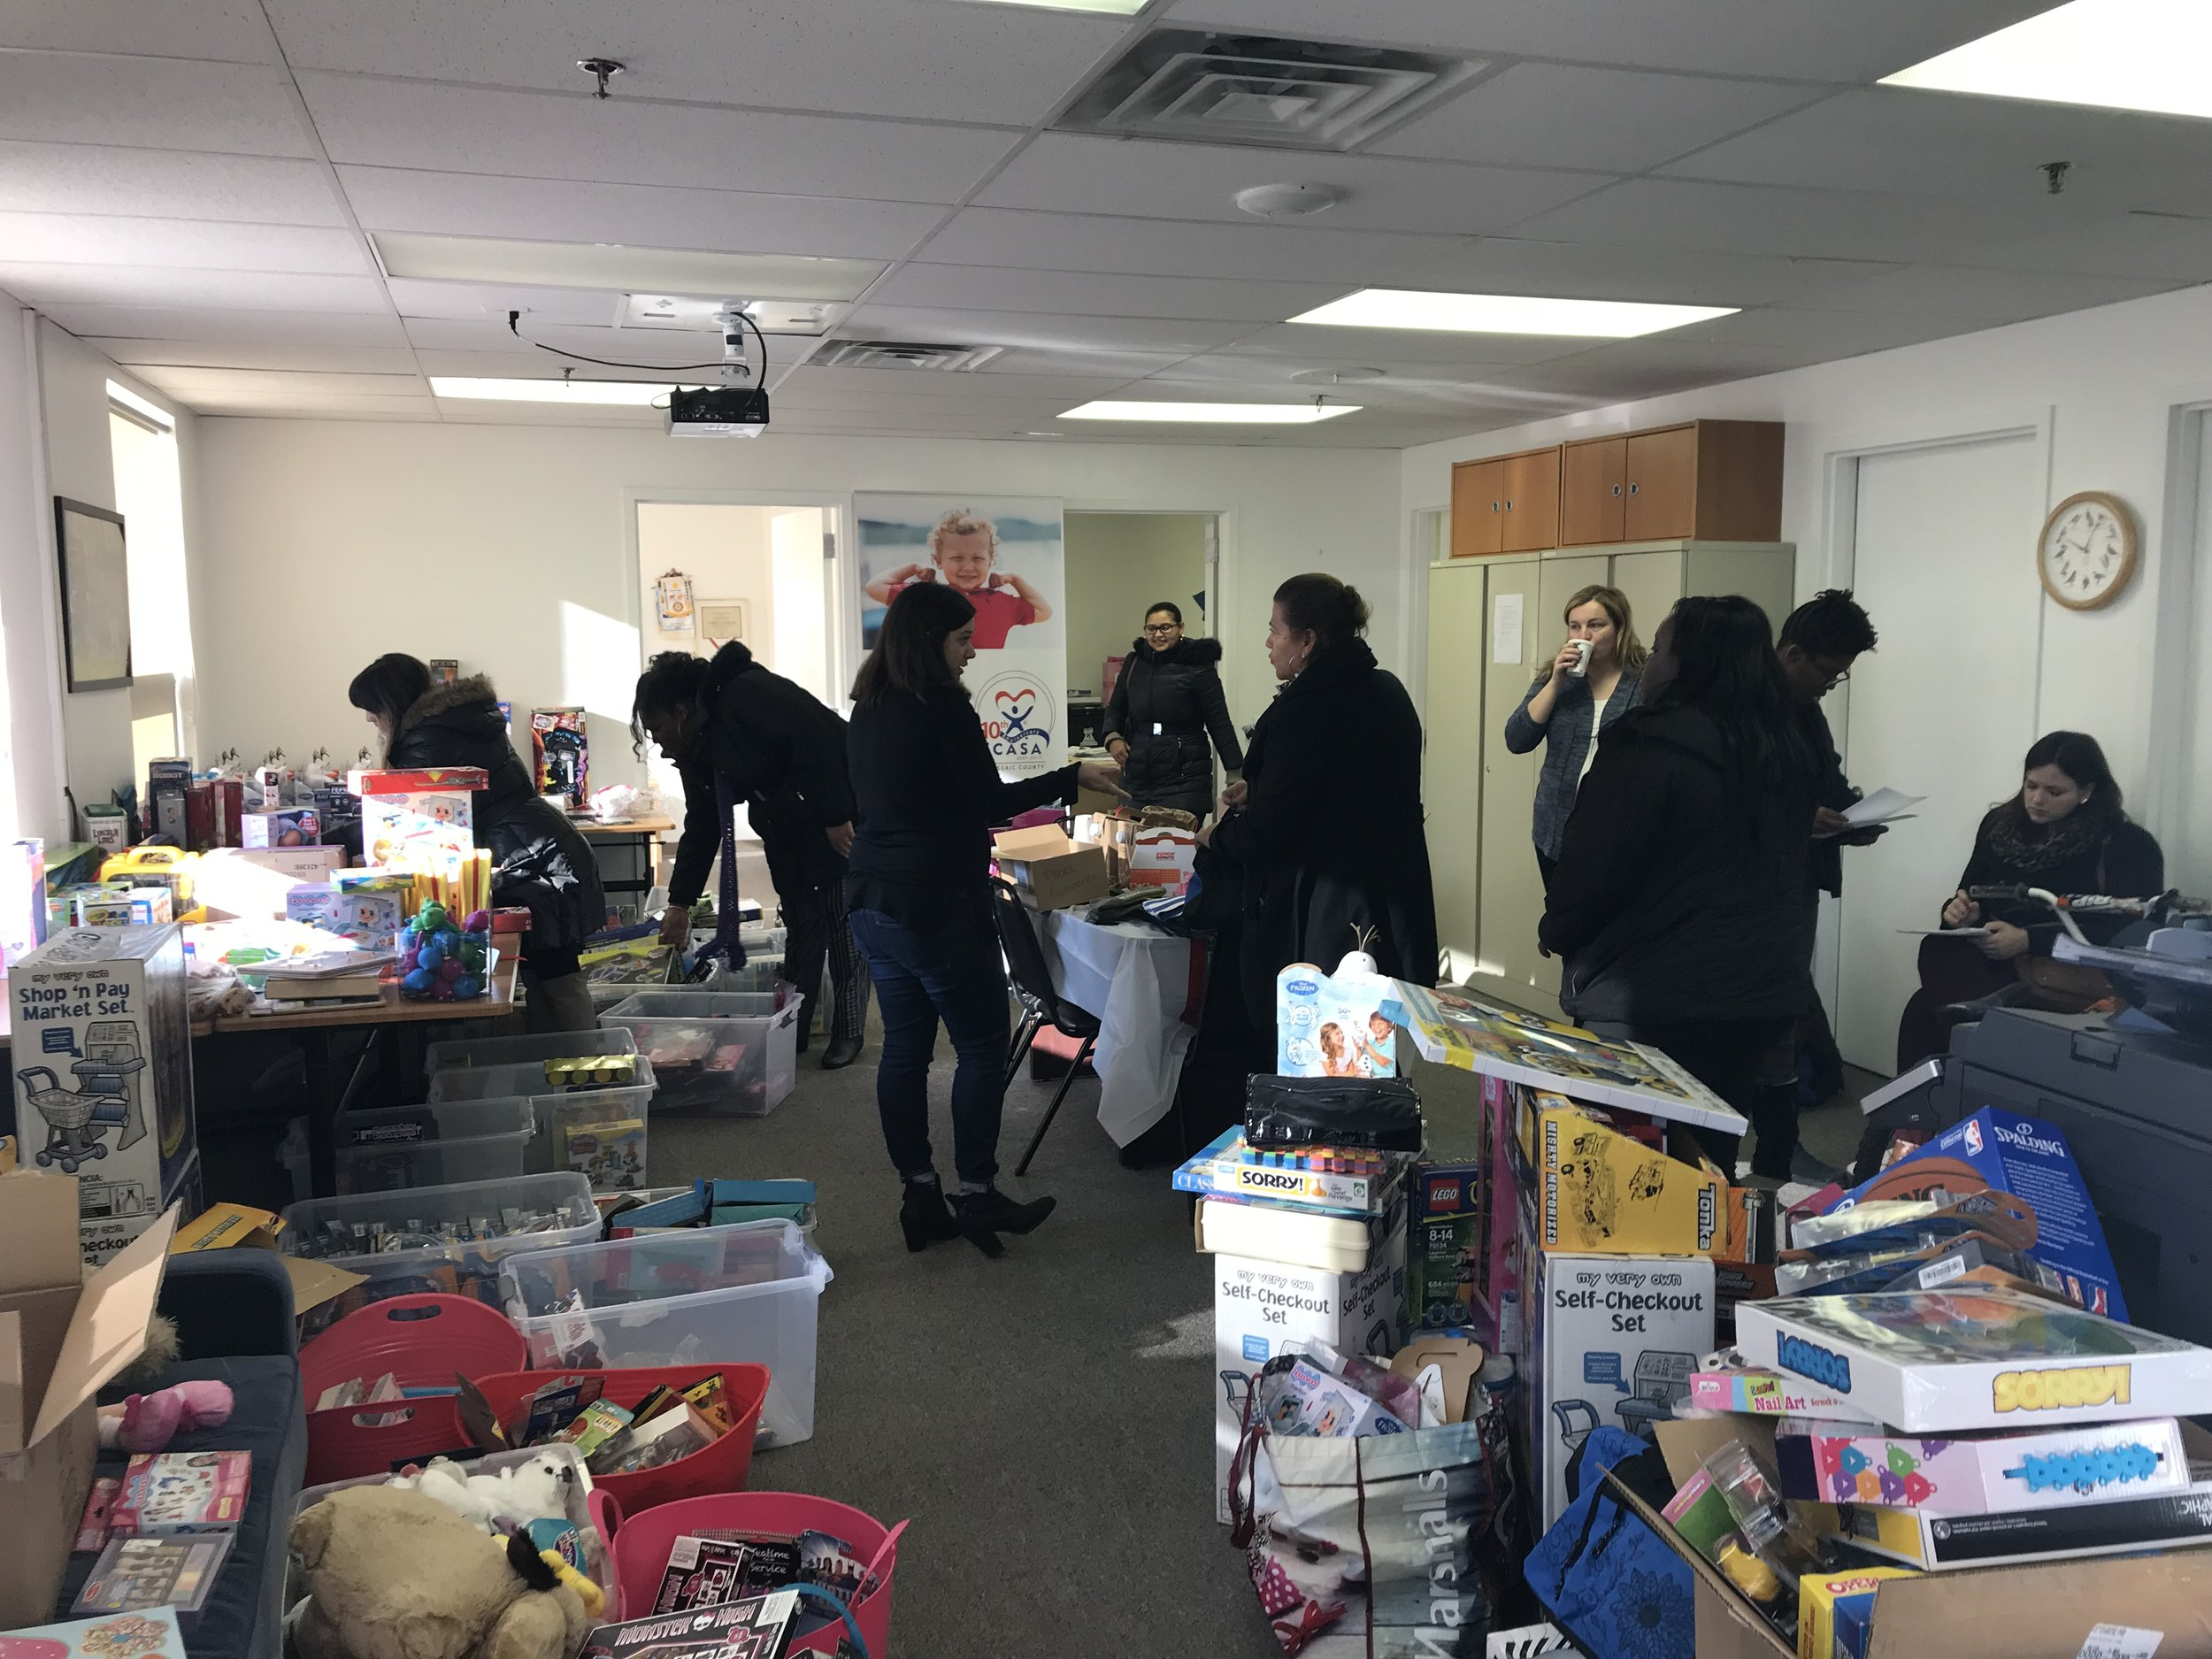 Caseworkers from the Division of Child Protection and Permanency (DCP&P) pick up gifts for children in the child welfare system who aren't in foster care.